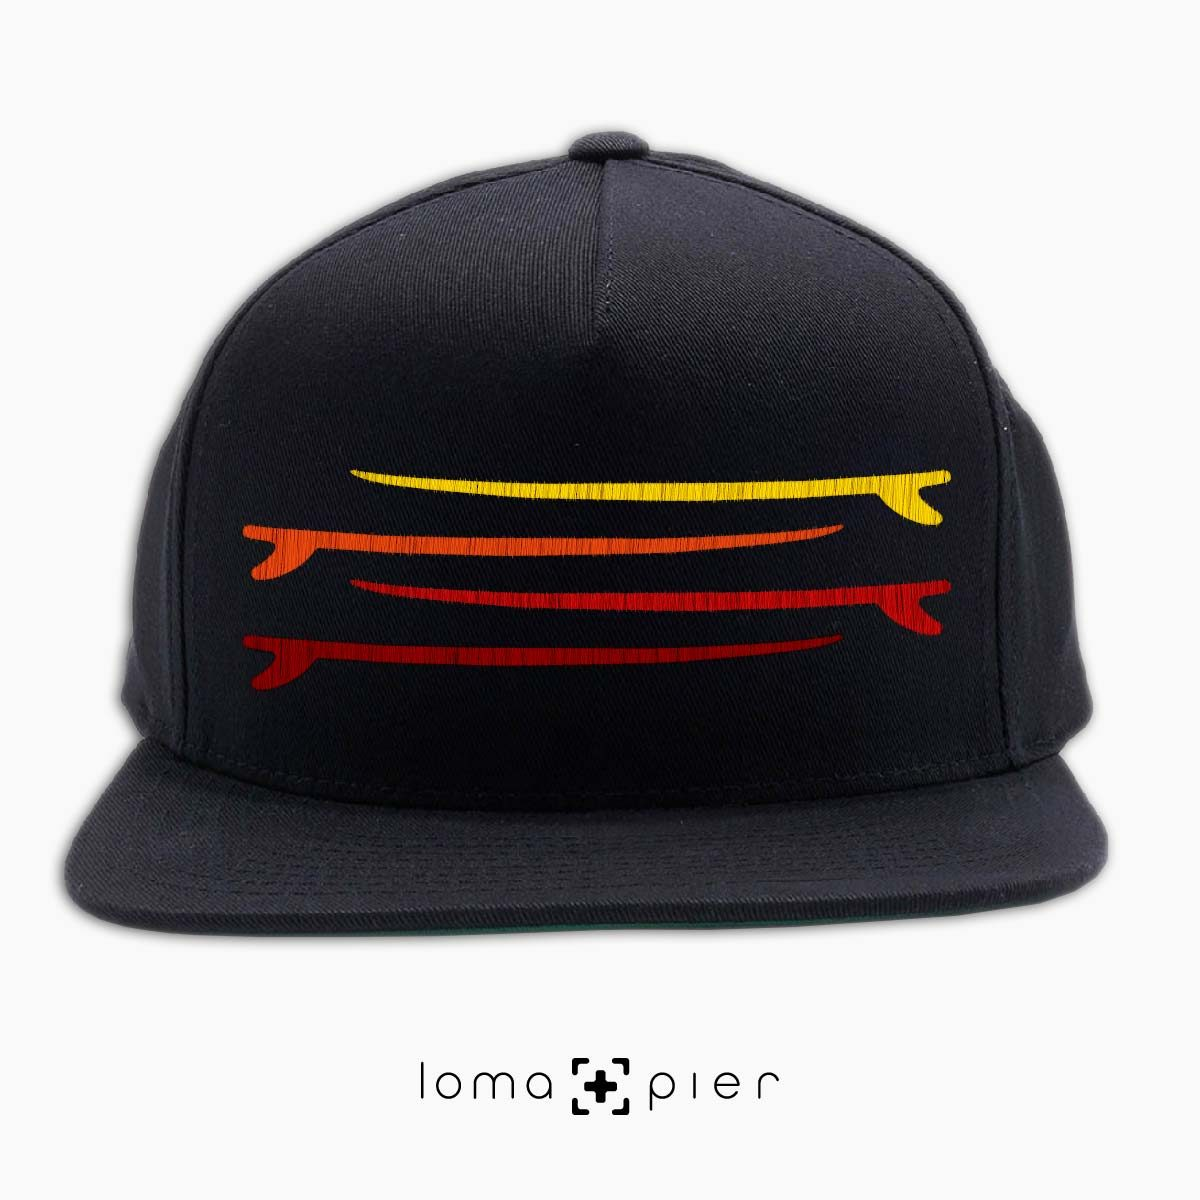 SURF STACK manhattan beach snapback hat in black by loma+pier hat store